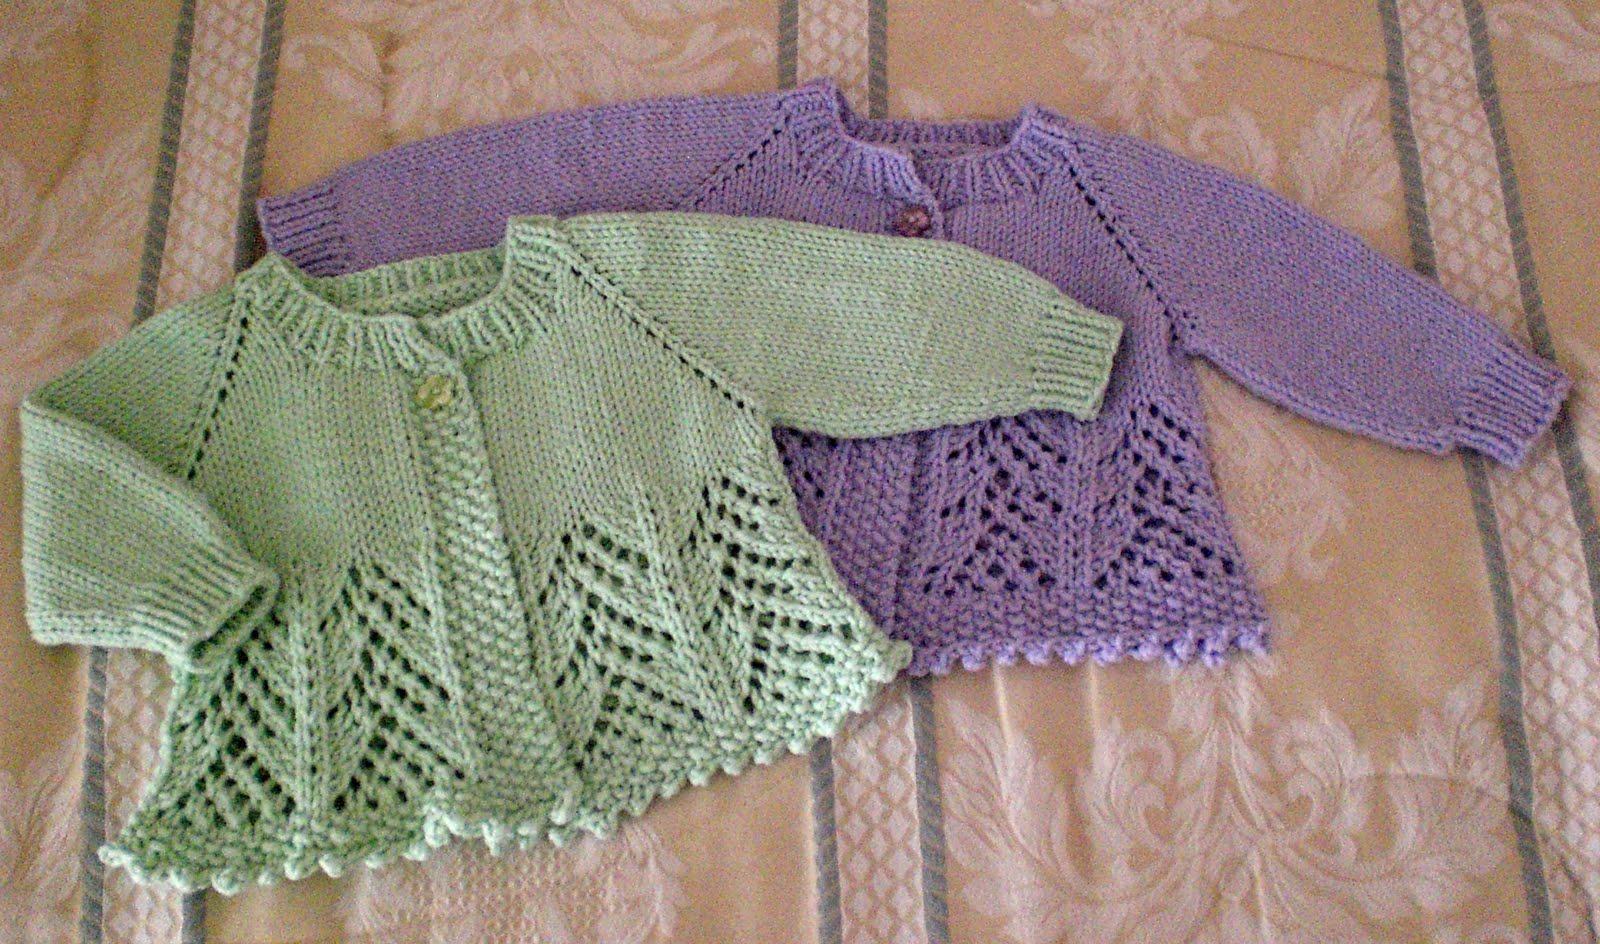 Knitting Sweater Design For Baby Girl : Day to Day: FO: more baby sweaters